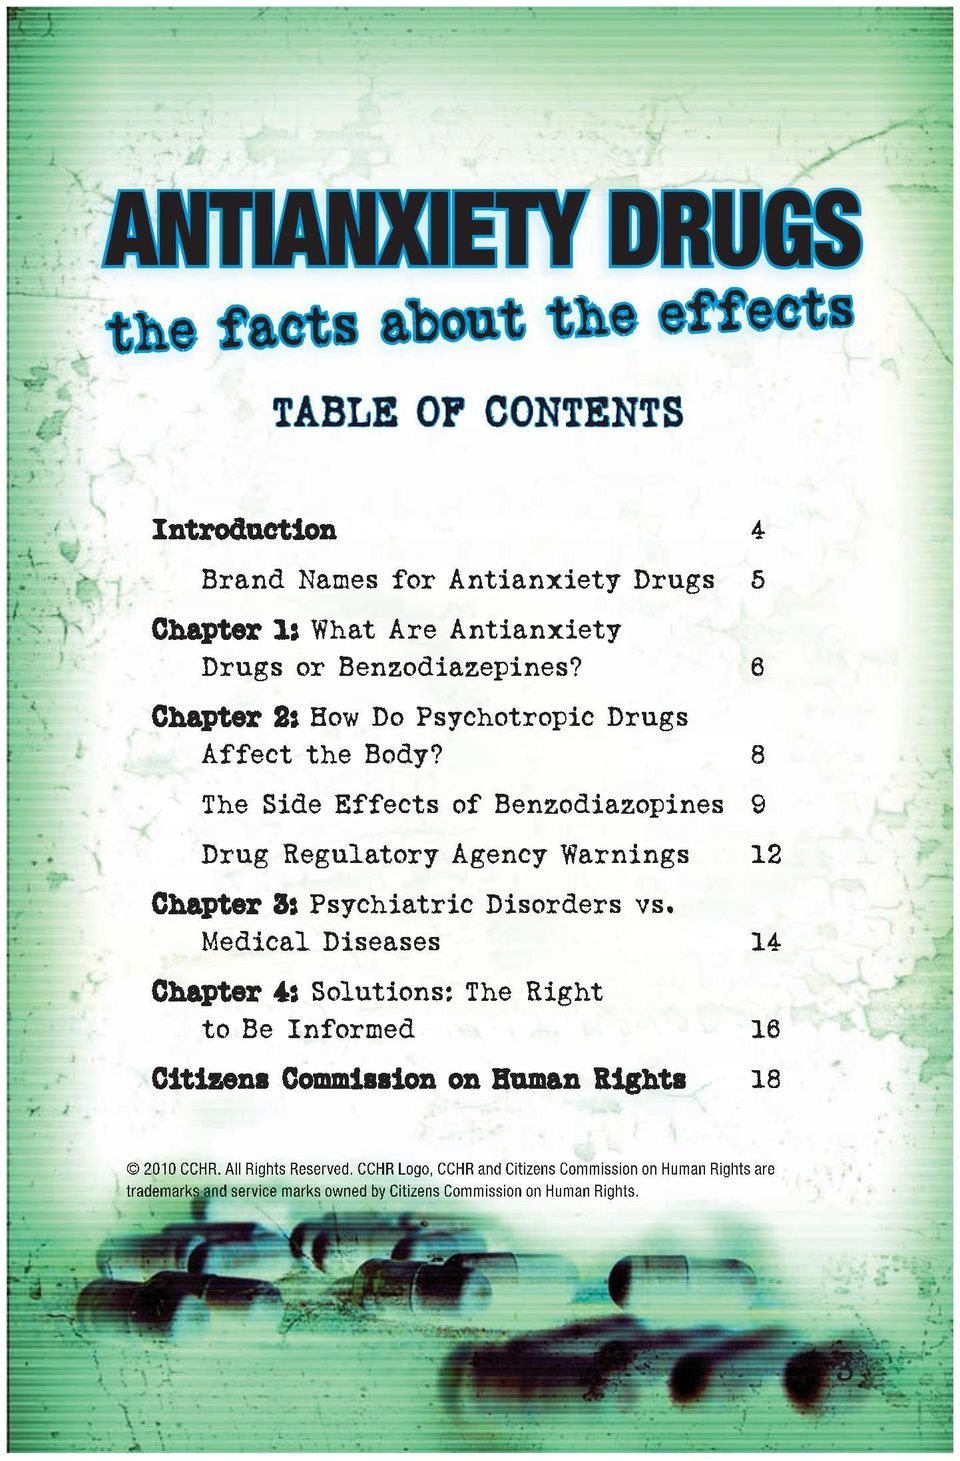 8 The Side Effects of Benzodiazopines 9 Drug Regulatory Agency Warnings 12 Chapter 3: Psychiatric Disorders vs.